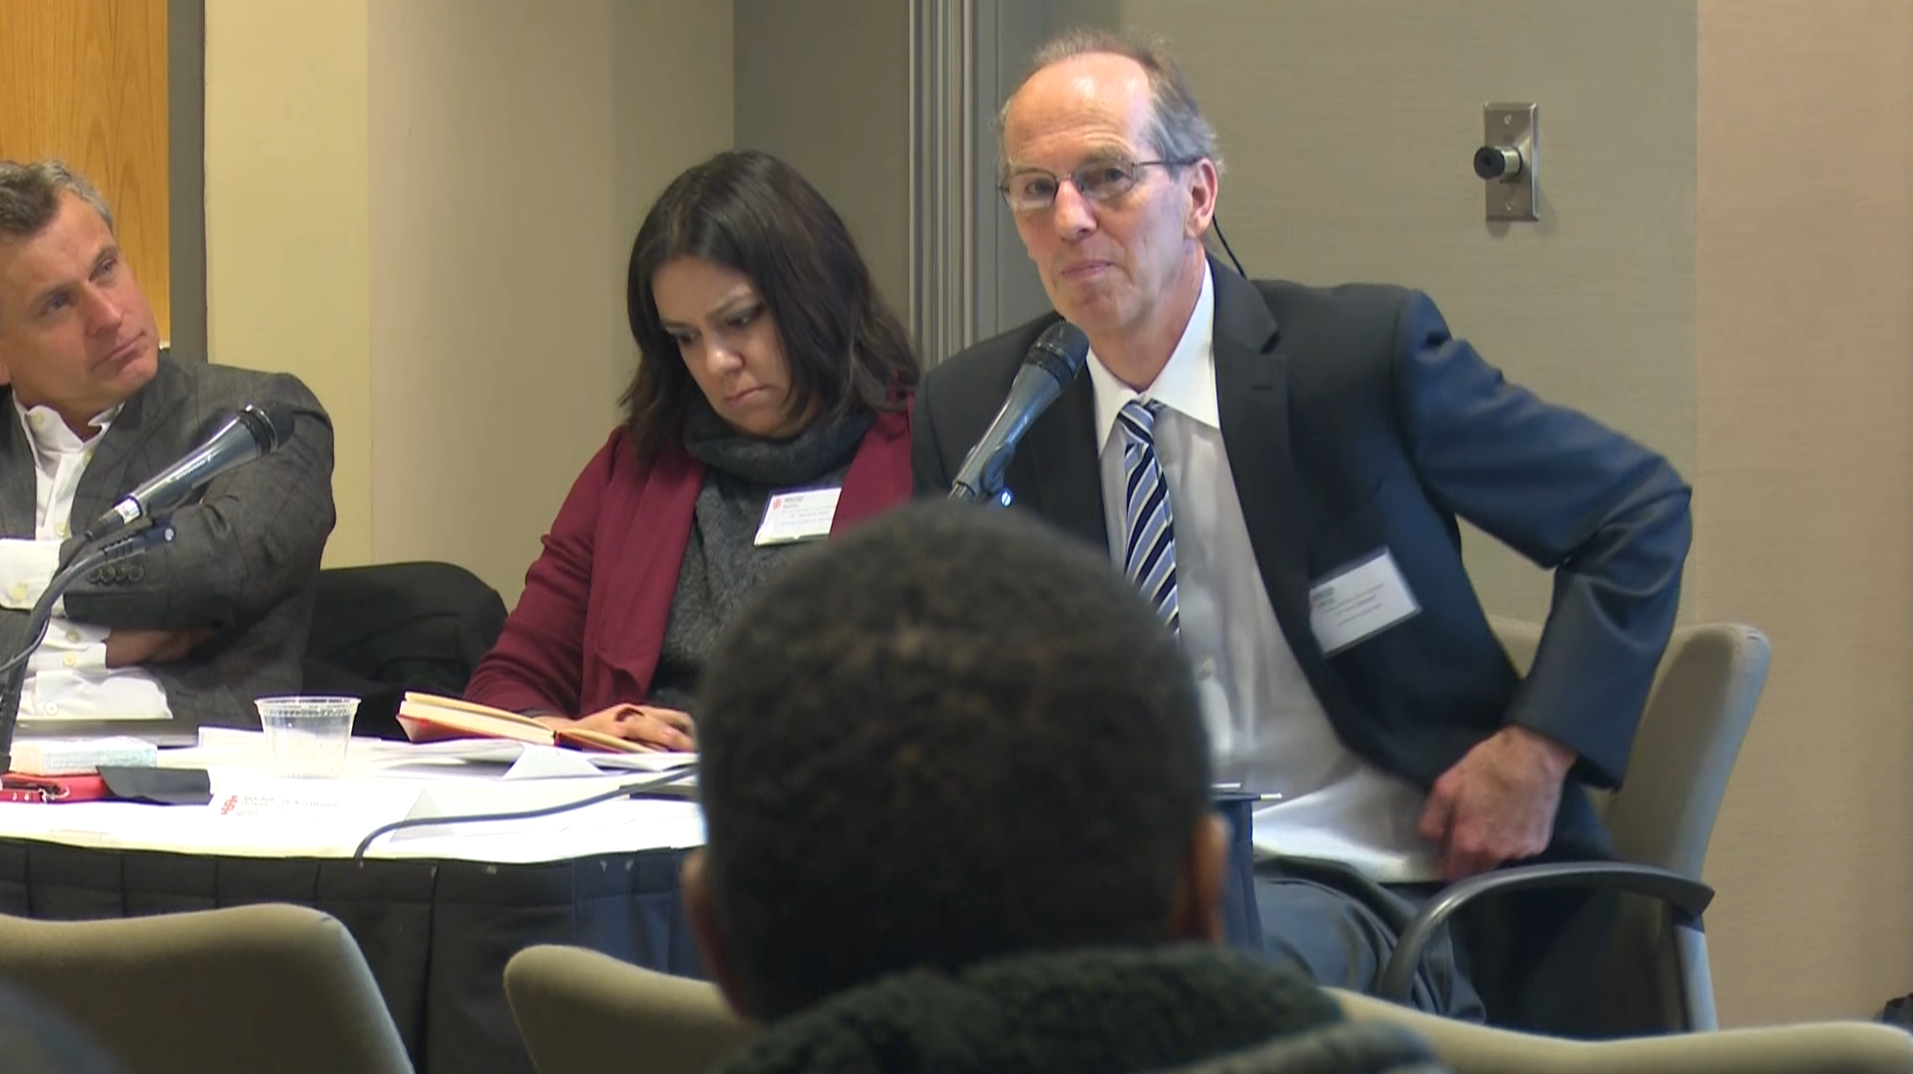 49th annual Frank Church Symposium aims to tackle tough issues